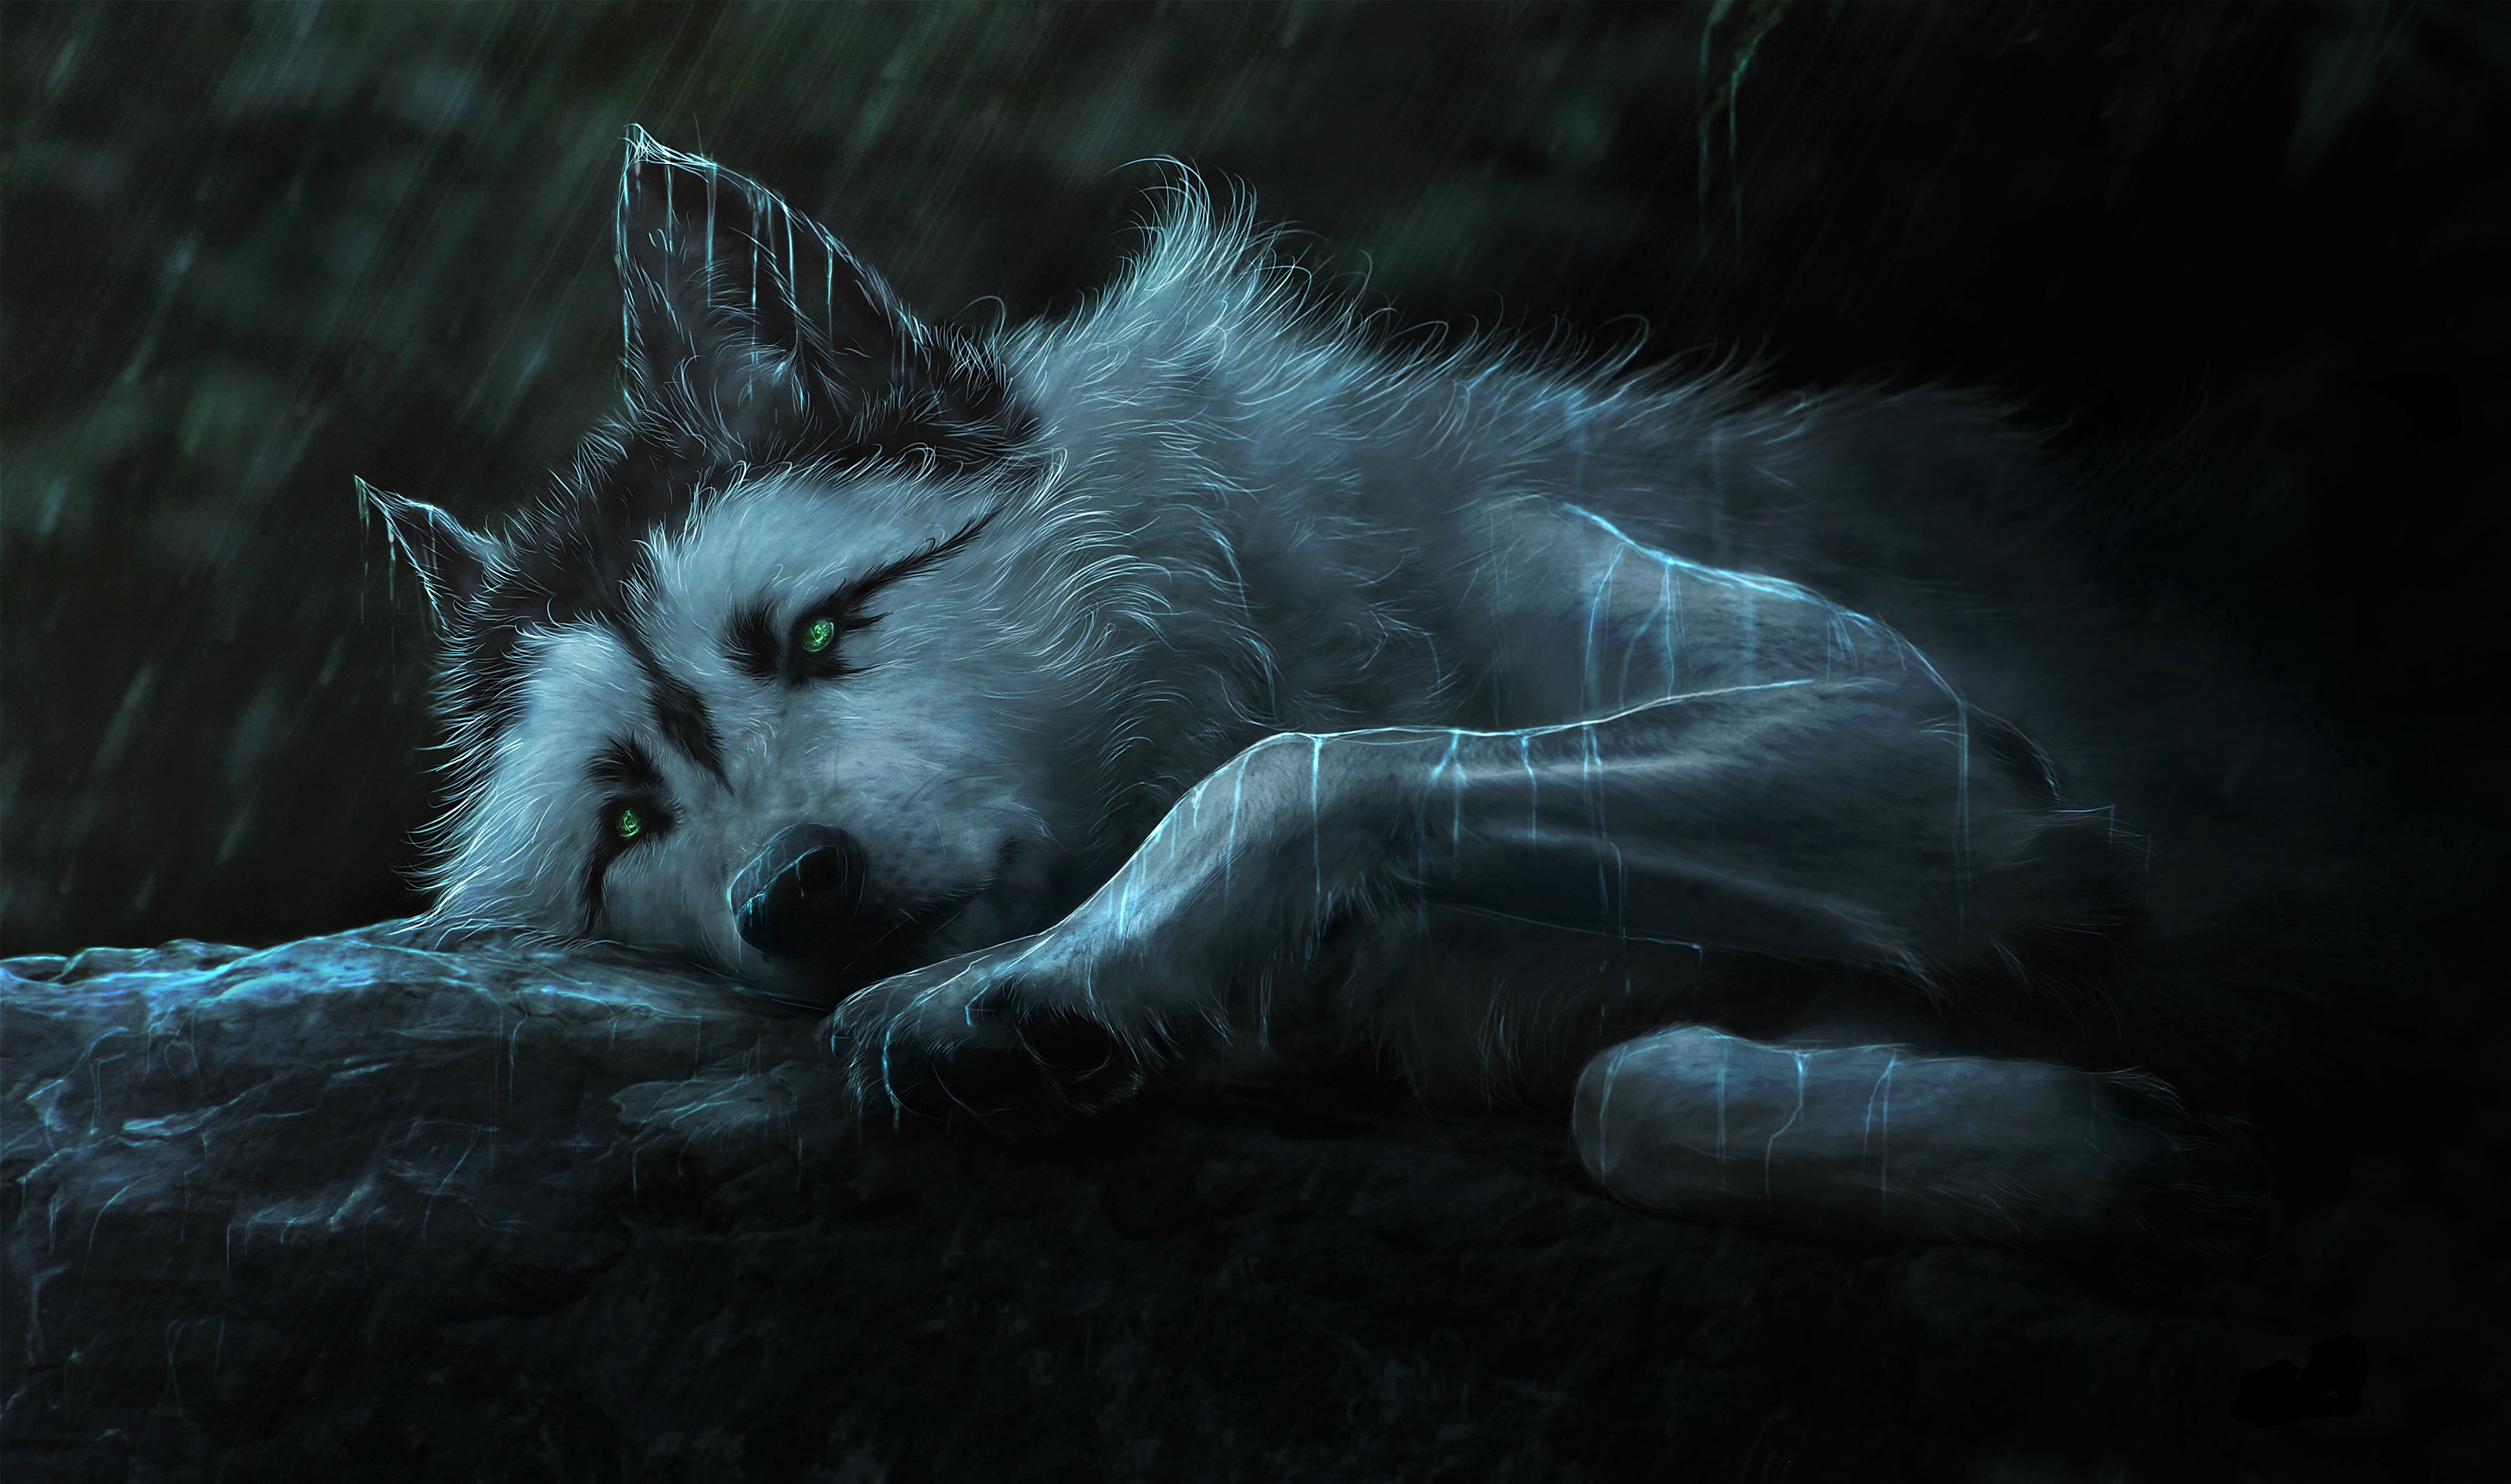 download fantasy wolf painting 2560x1024 resolution hd 4k